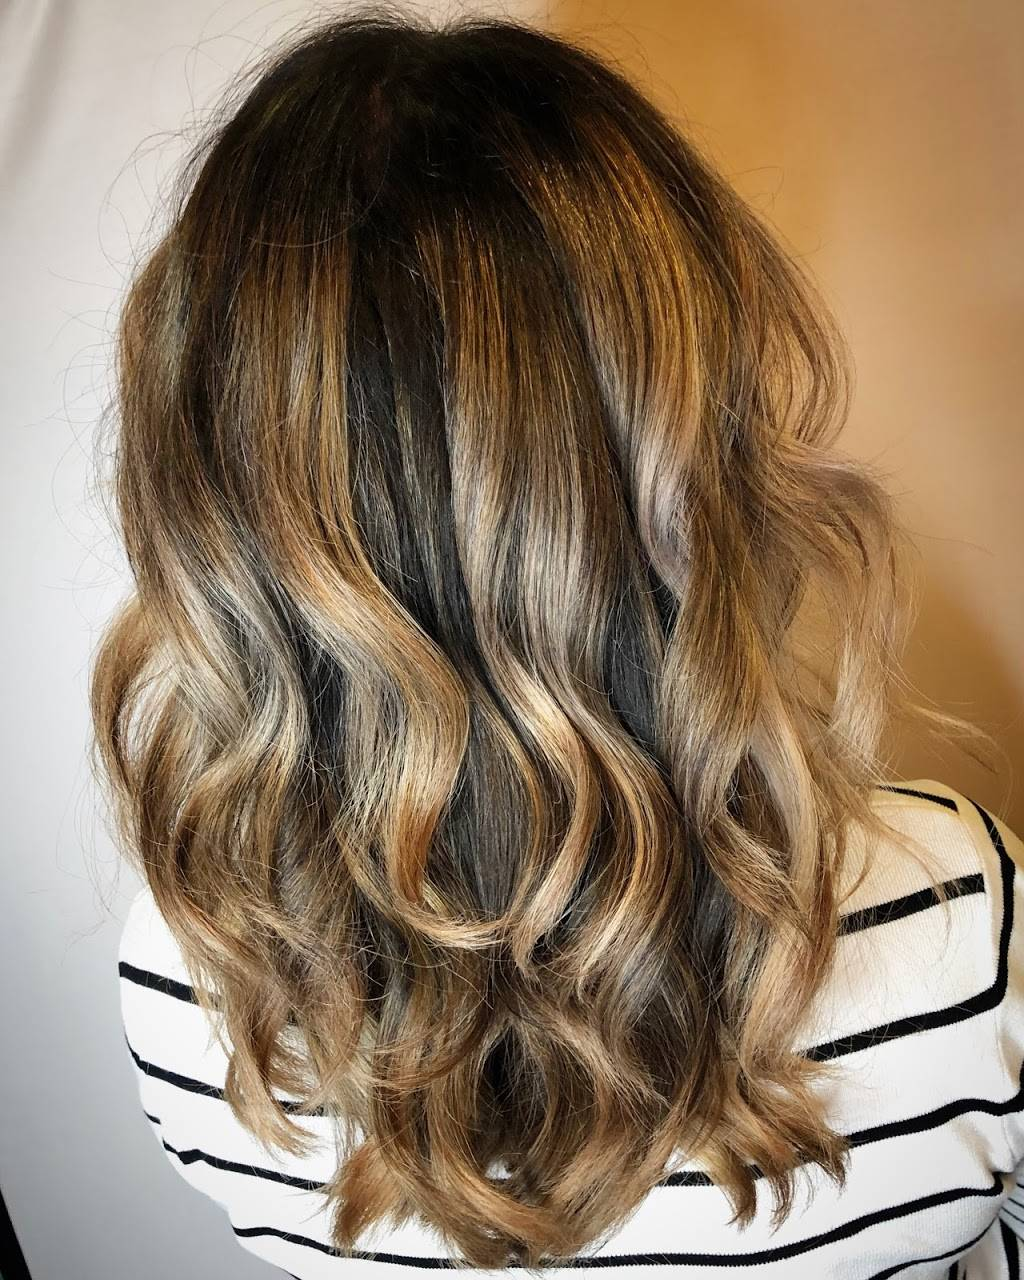 Currin Marcum at Roots Salon - hair care    Photo 6 of 10   Address: 6299 Central Ave, St. Petersburg, FL 33710, USA   Phone: (727) 248-9375